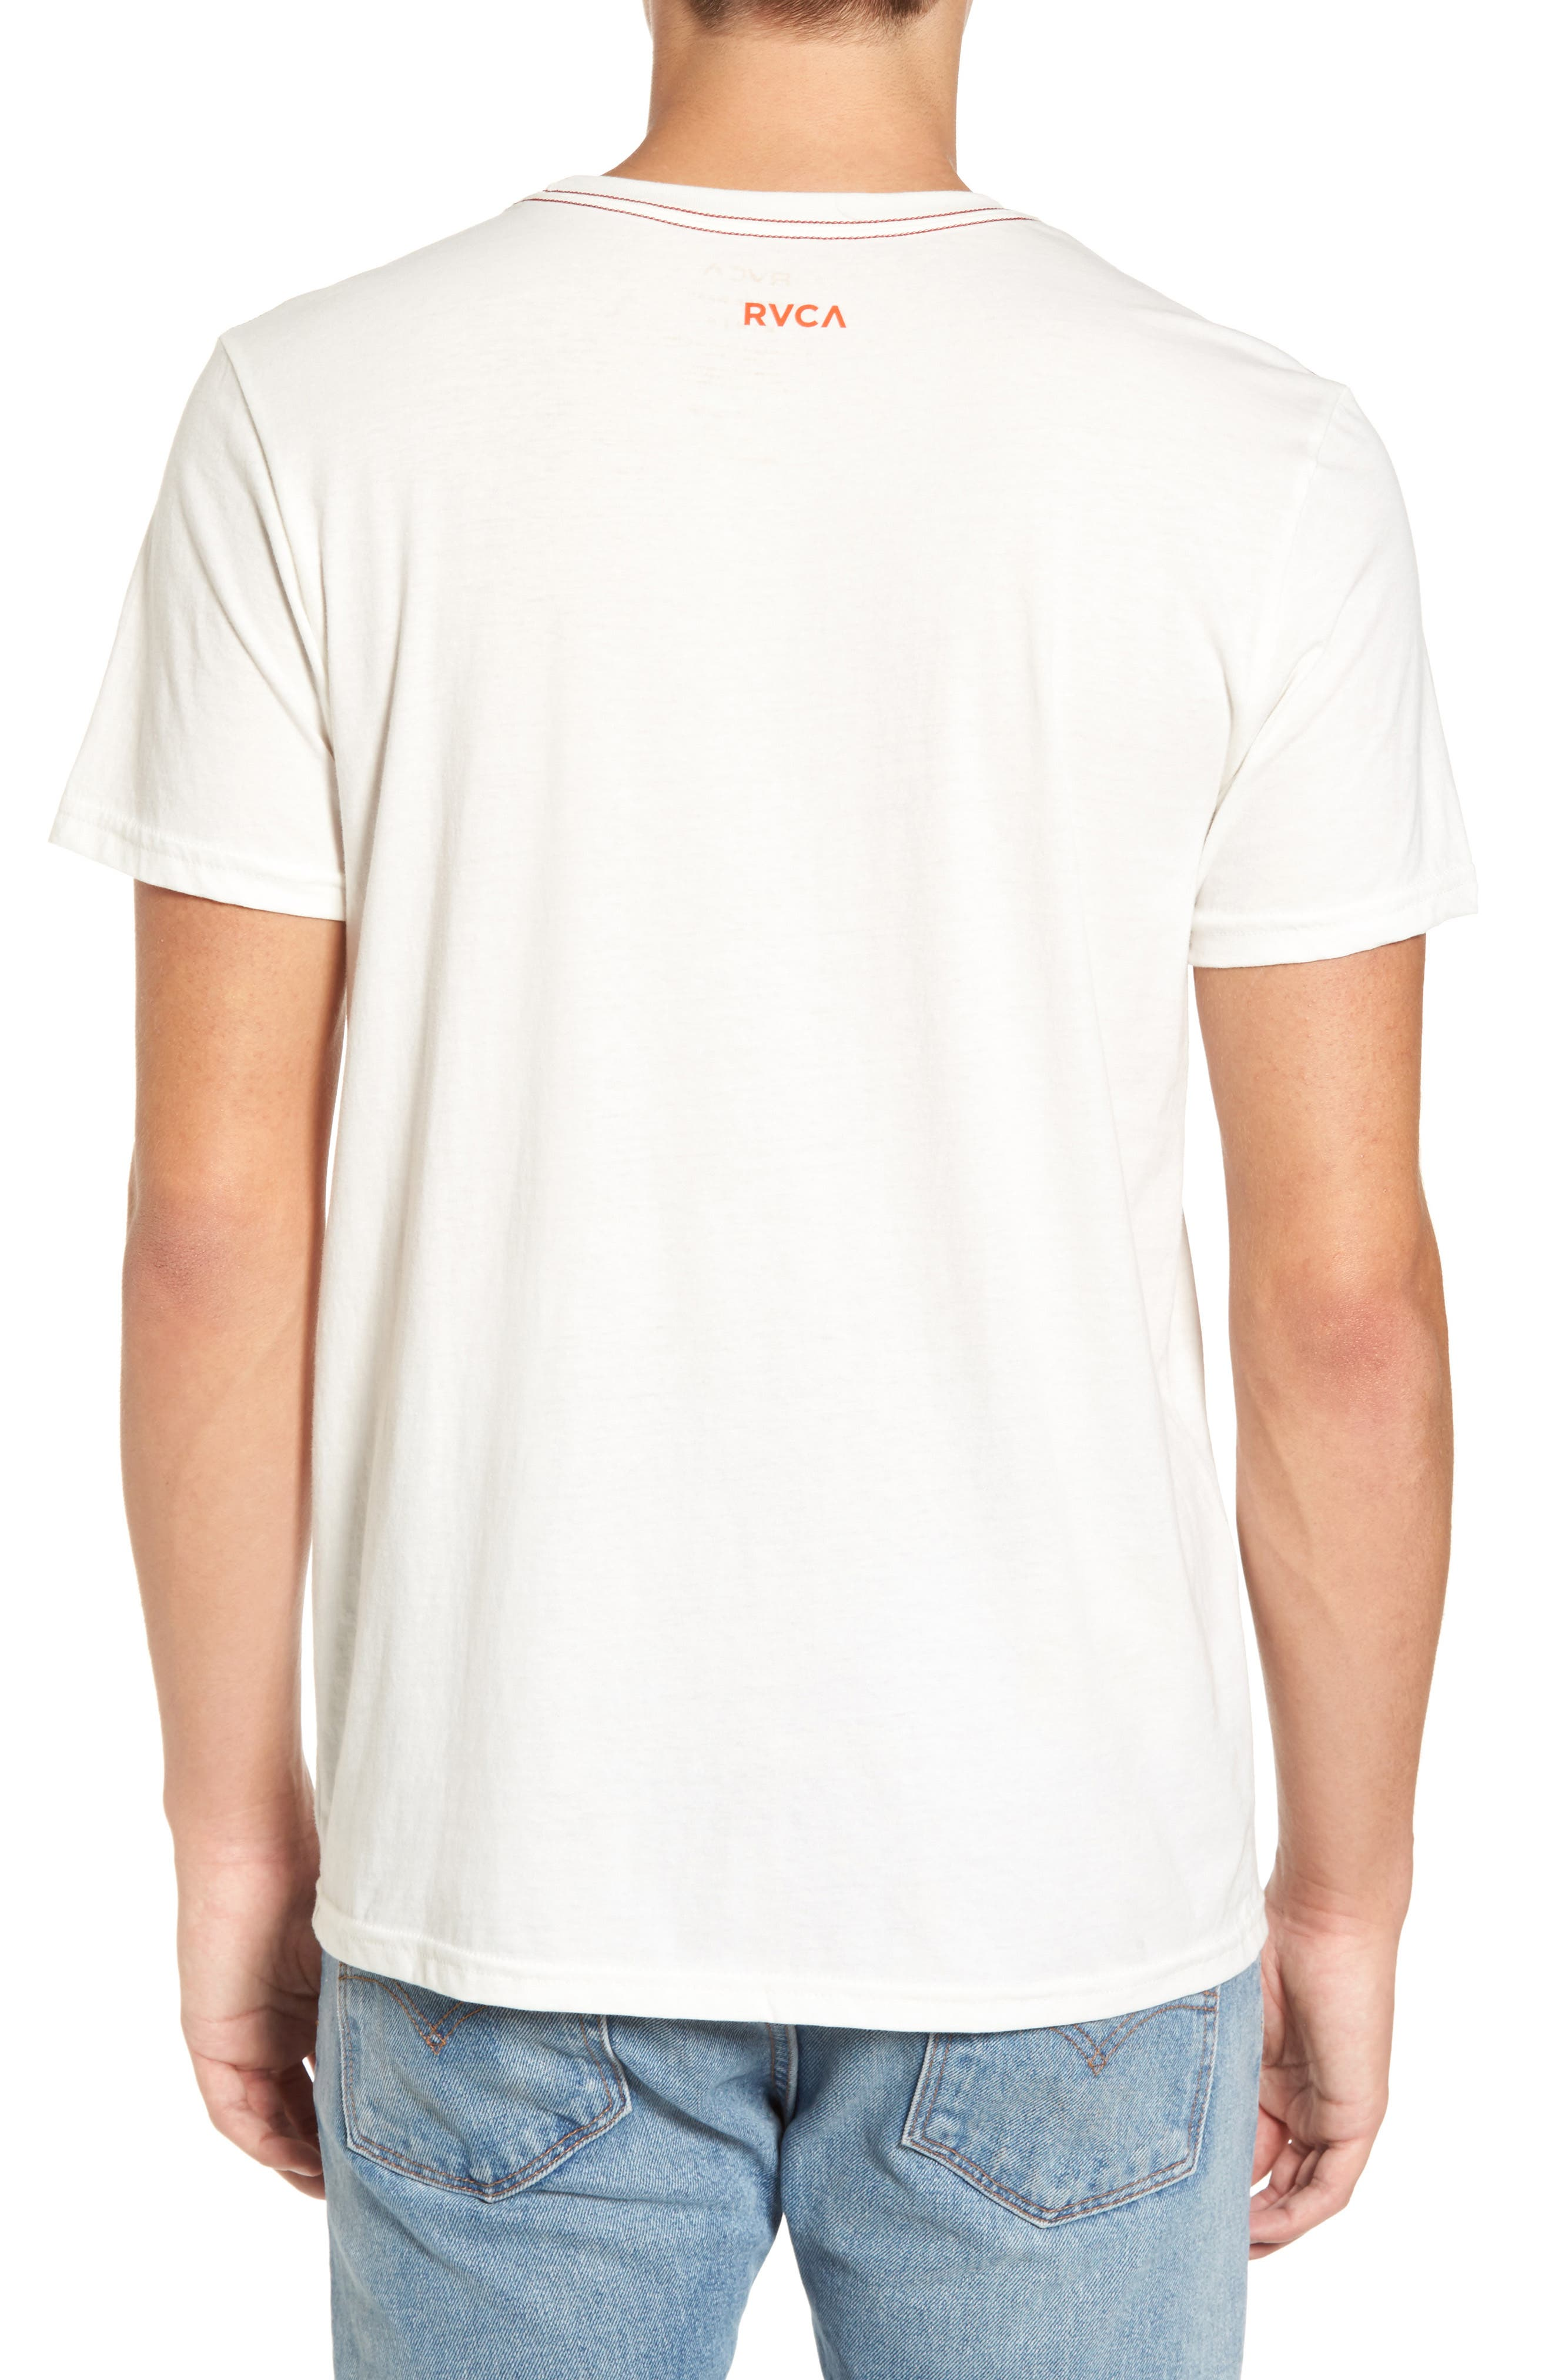 In My Own World Graphic T-Shirt,                             Alternate thumbnail 2, color,